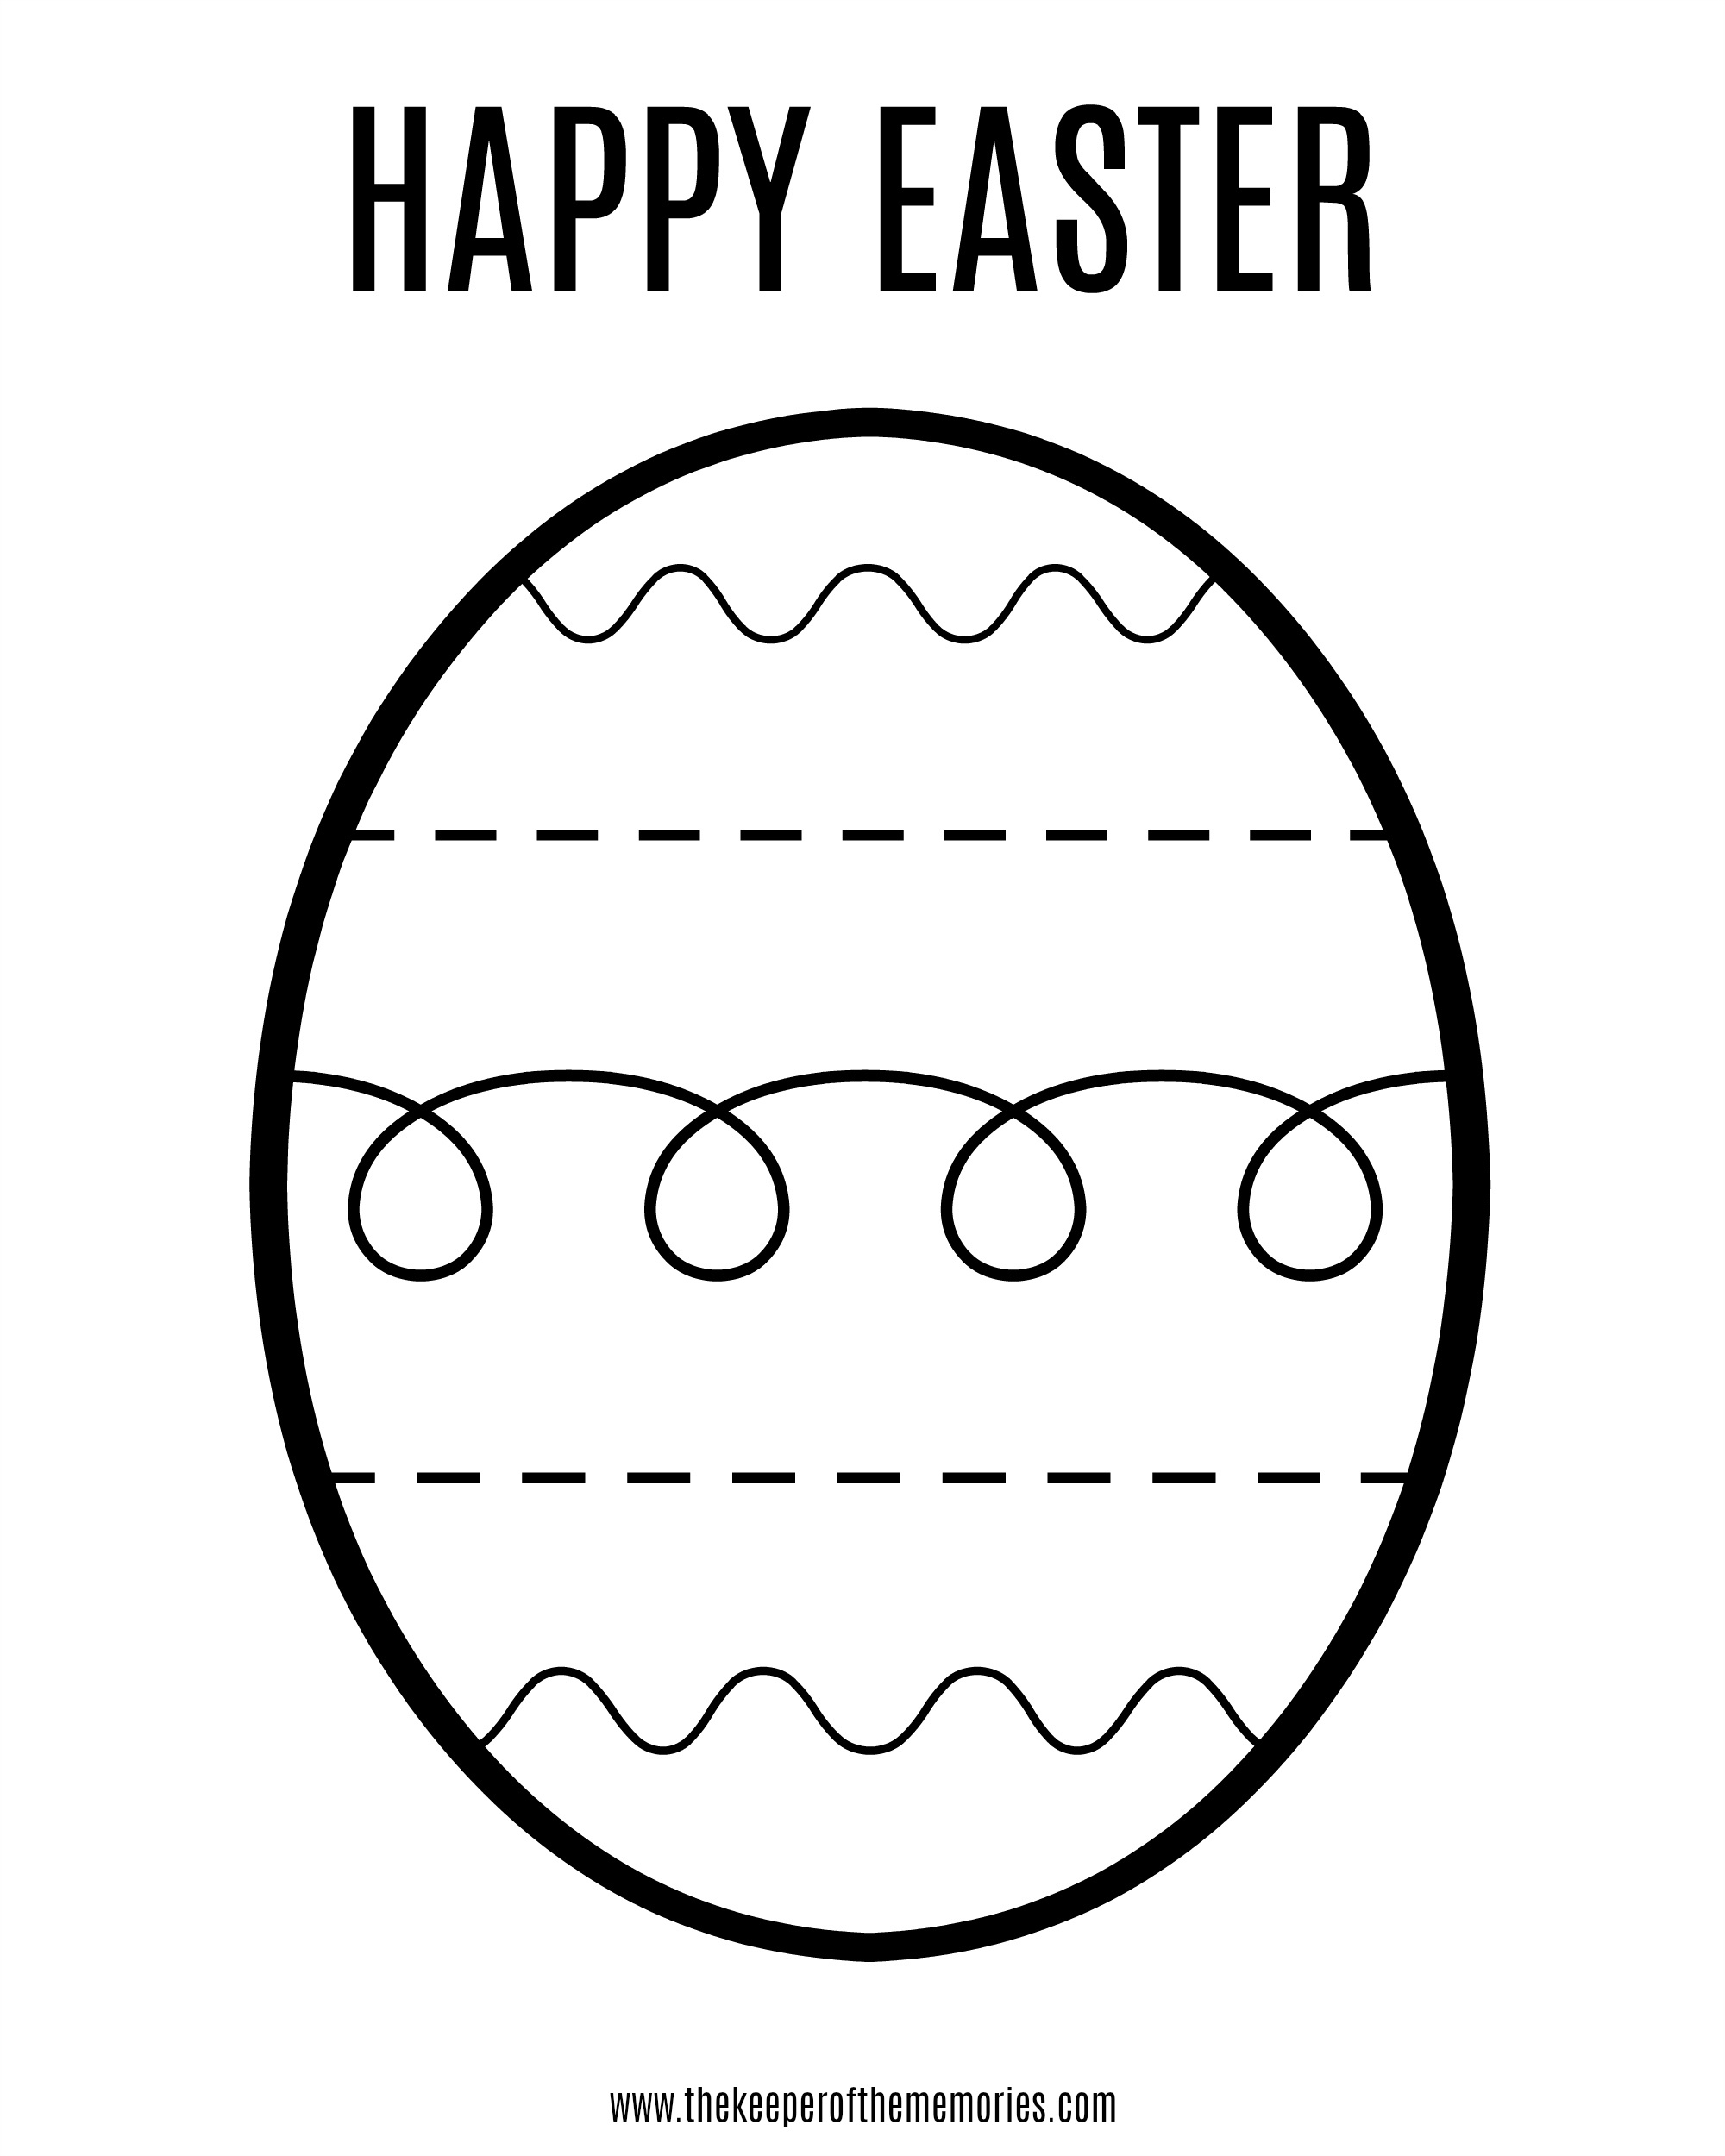 Free Printable Easter Coloring Sheet For Little Kids - The Keeper Of - Free Printable Easter Coloring Pages